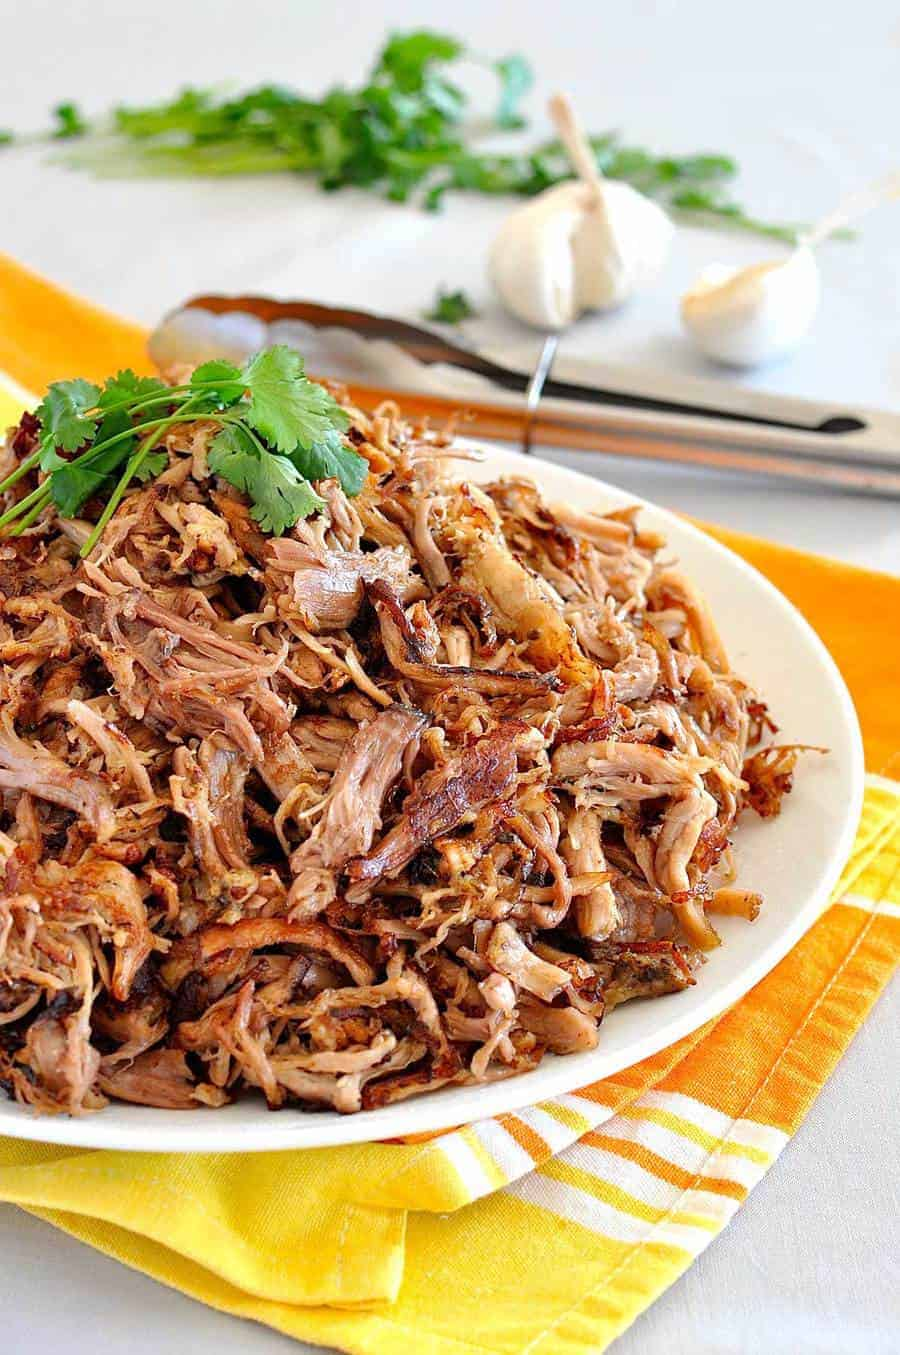 Recipes slow cooker pork